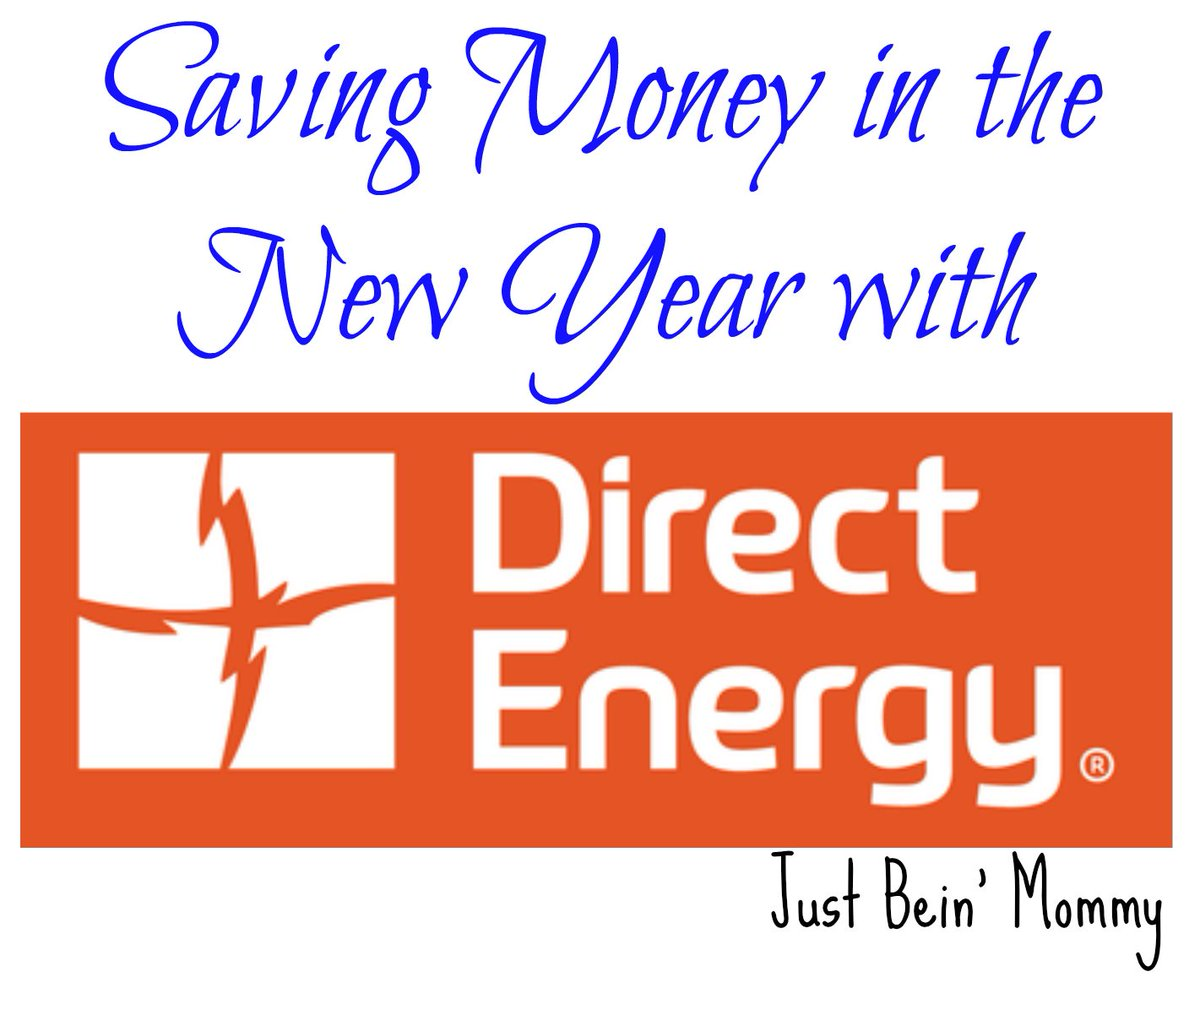 See how you can save on home costs this year! @DirectEnergy can help https://t.co/3xWLaB7FDF! #LiveBrighter #AD https://t.co/mzRHszWTw6